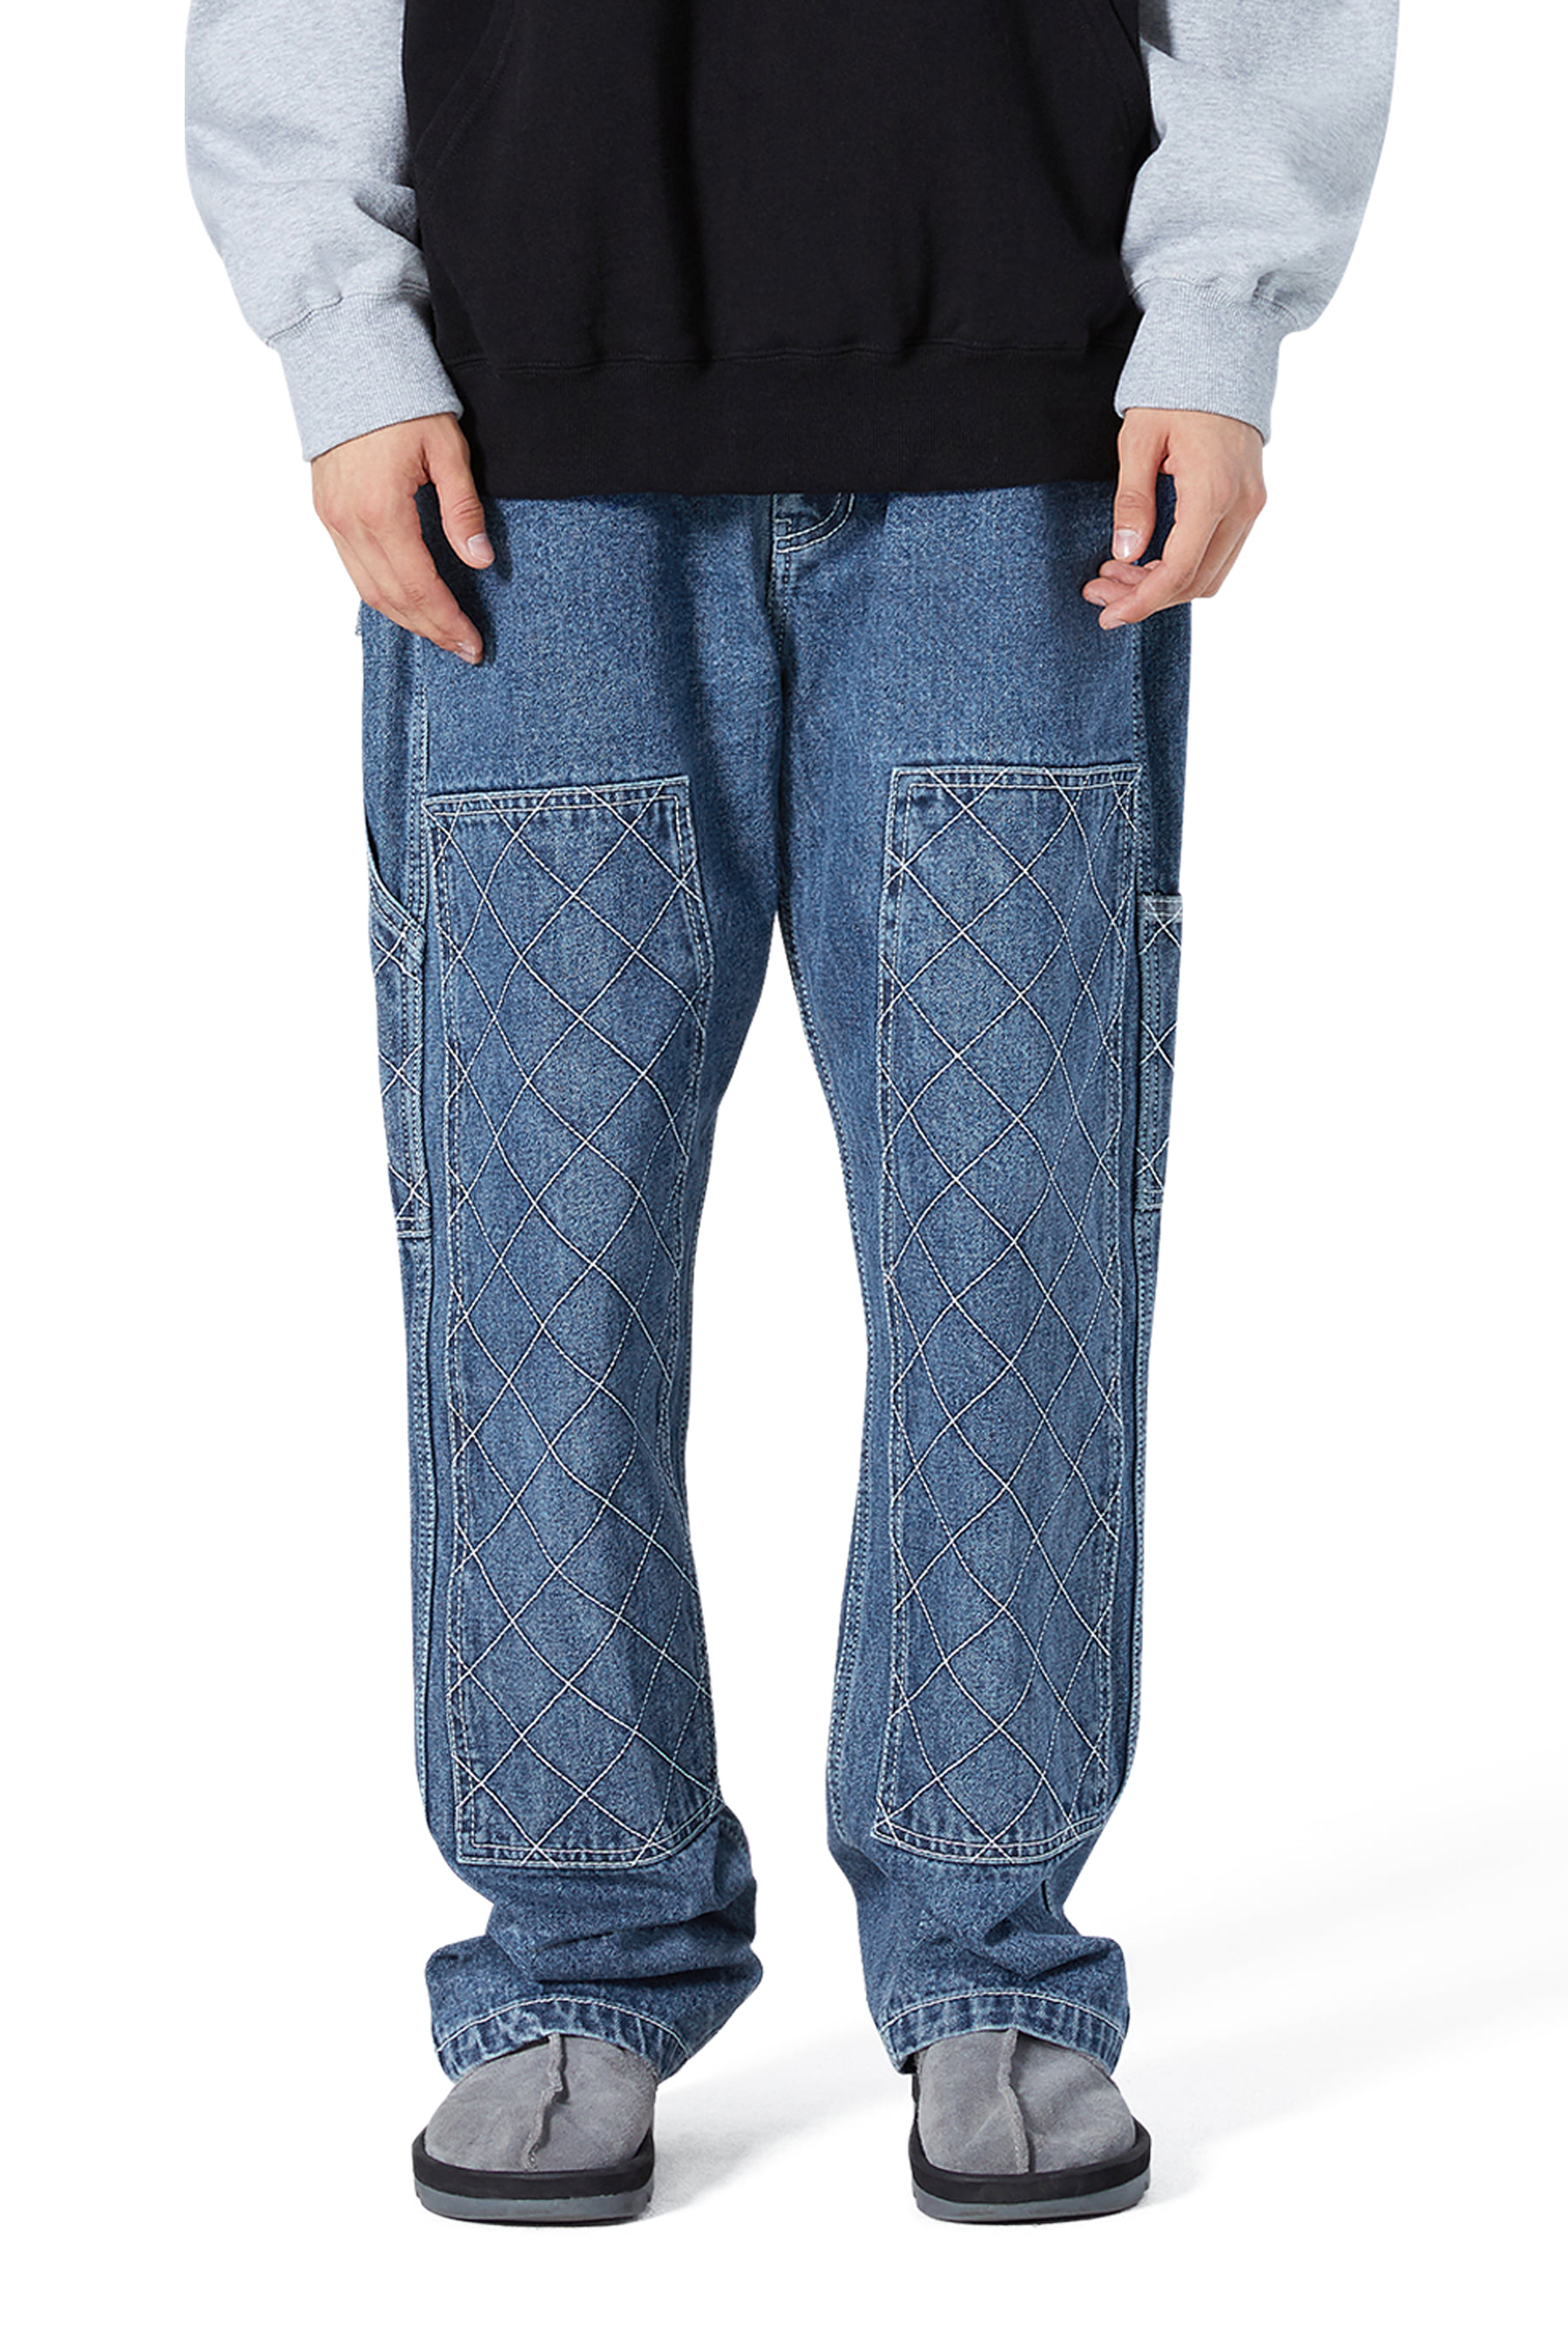 Net Denim Work Pants Deep Blue